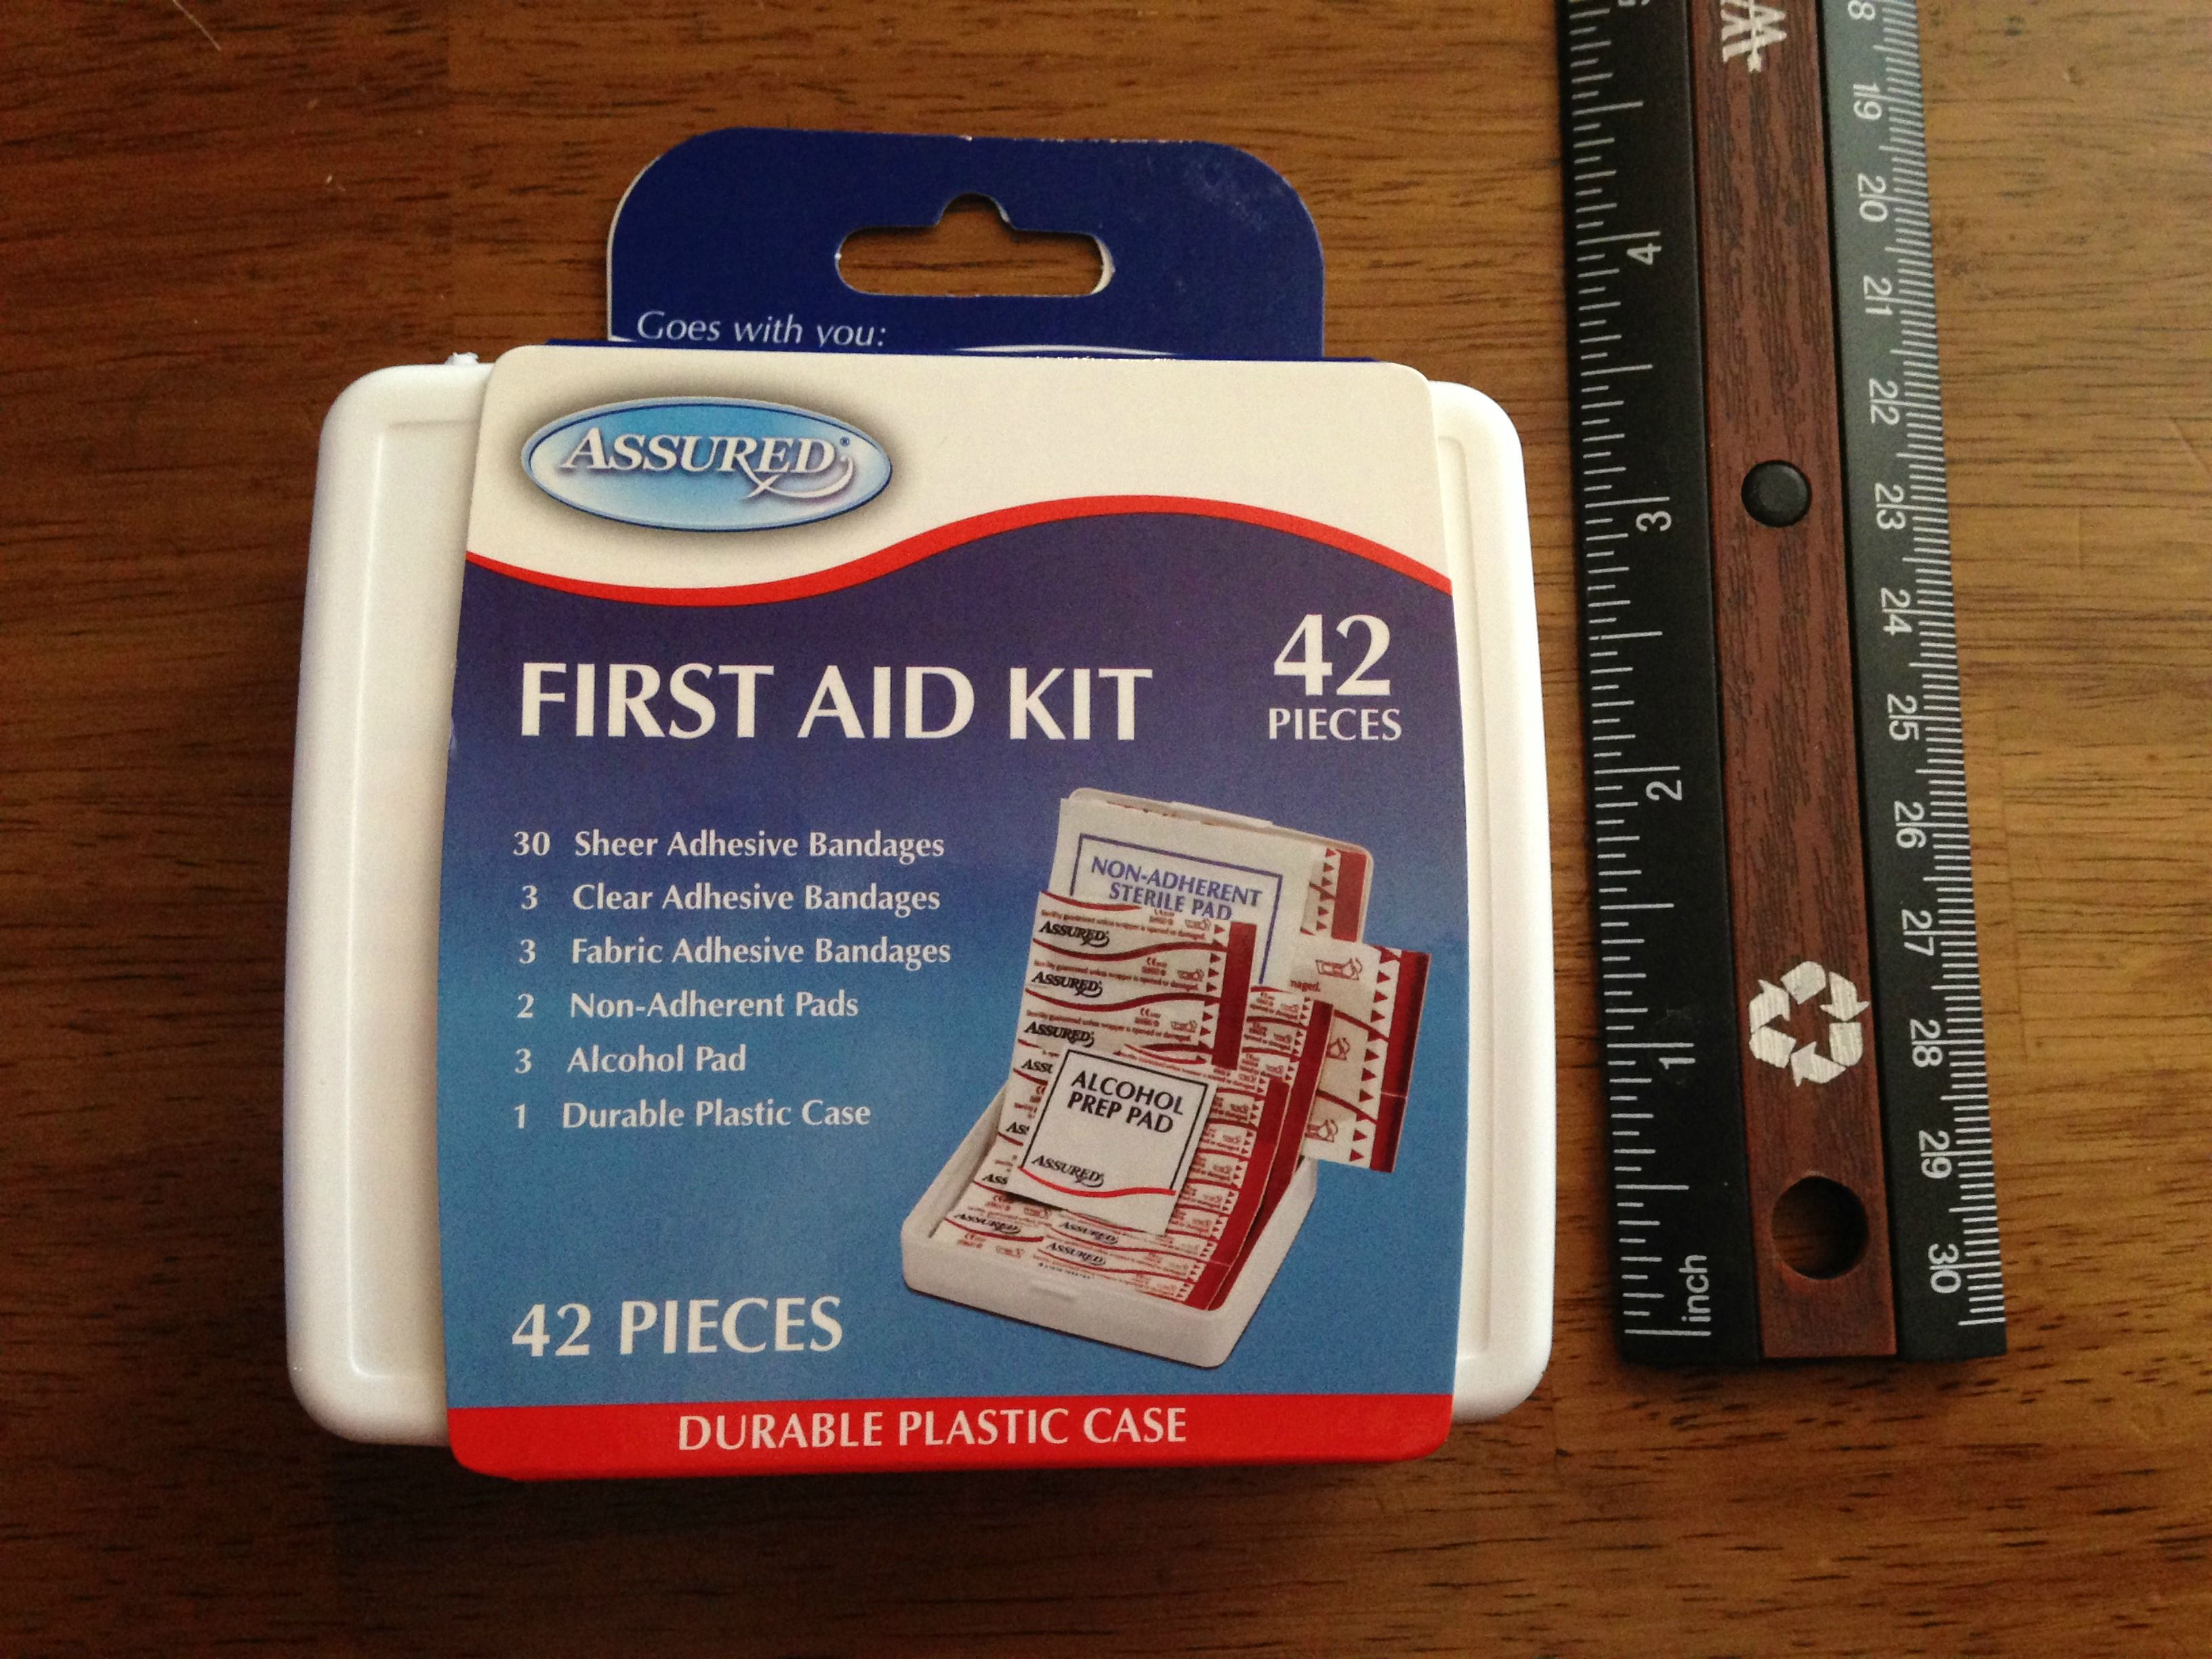 Operation Christmas Child Dollar Tree First Aid Kit